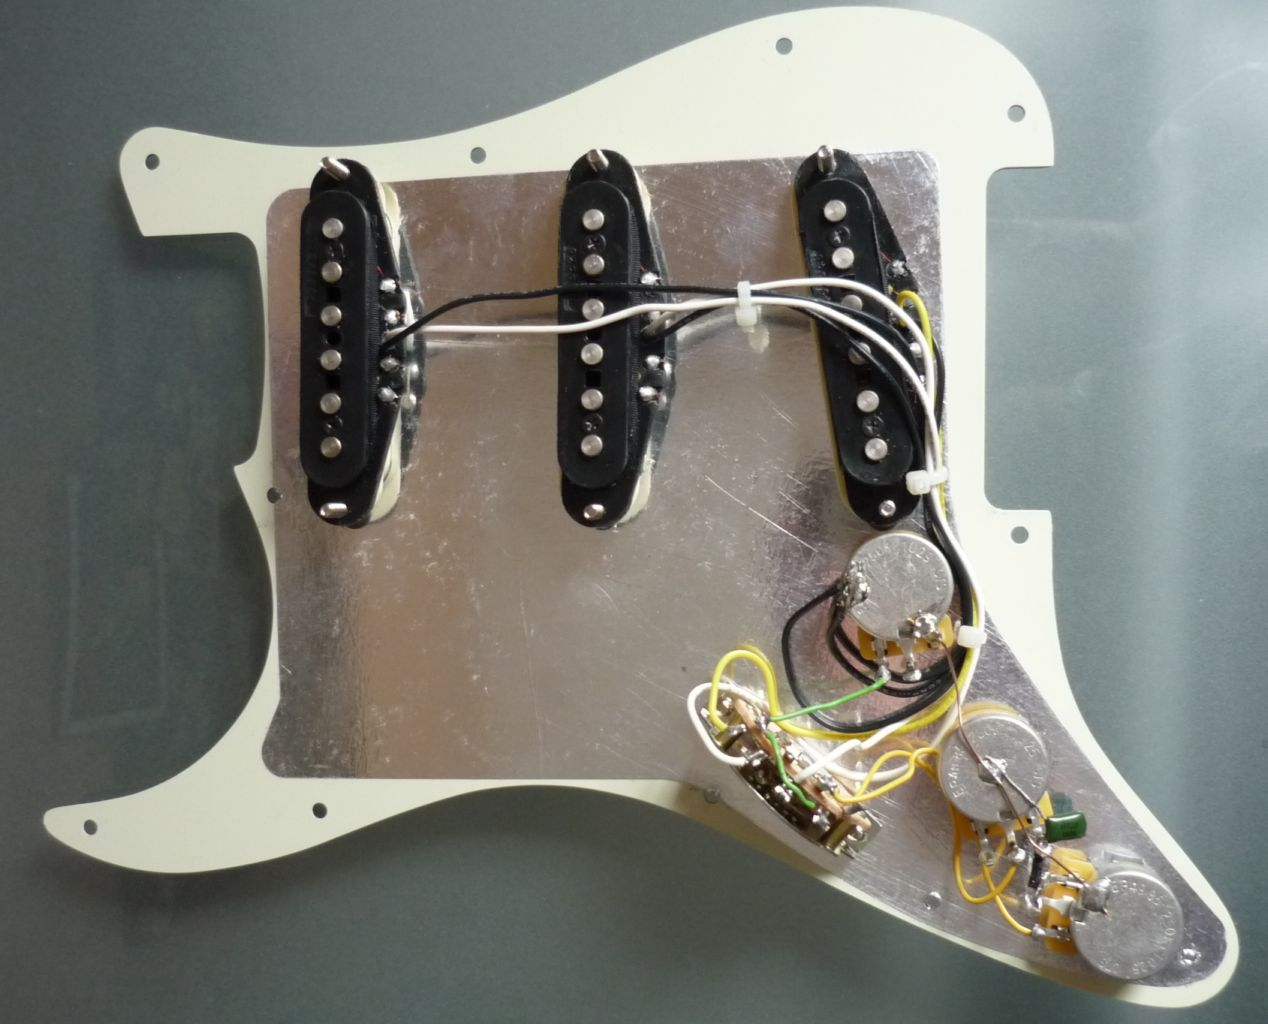 Fender Pickup Wiring Diagrams Guide And Troubleshooting Of Scn Diagram Noiseless Pickups Guitar Jazz Bass